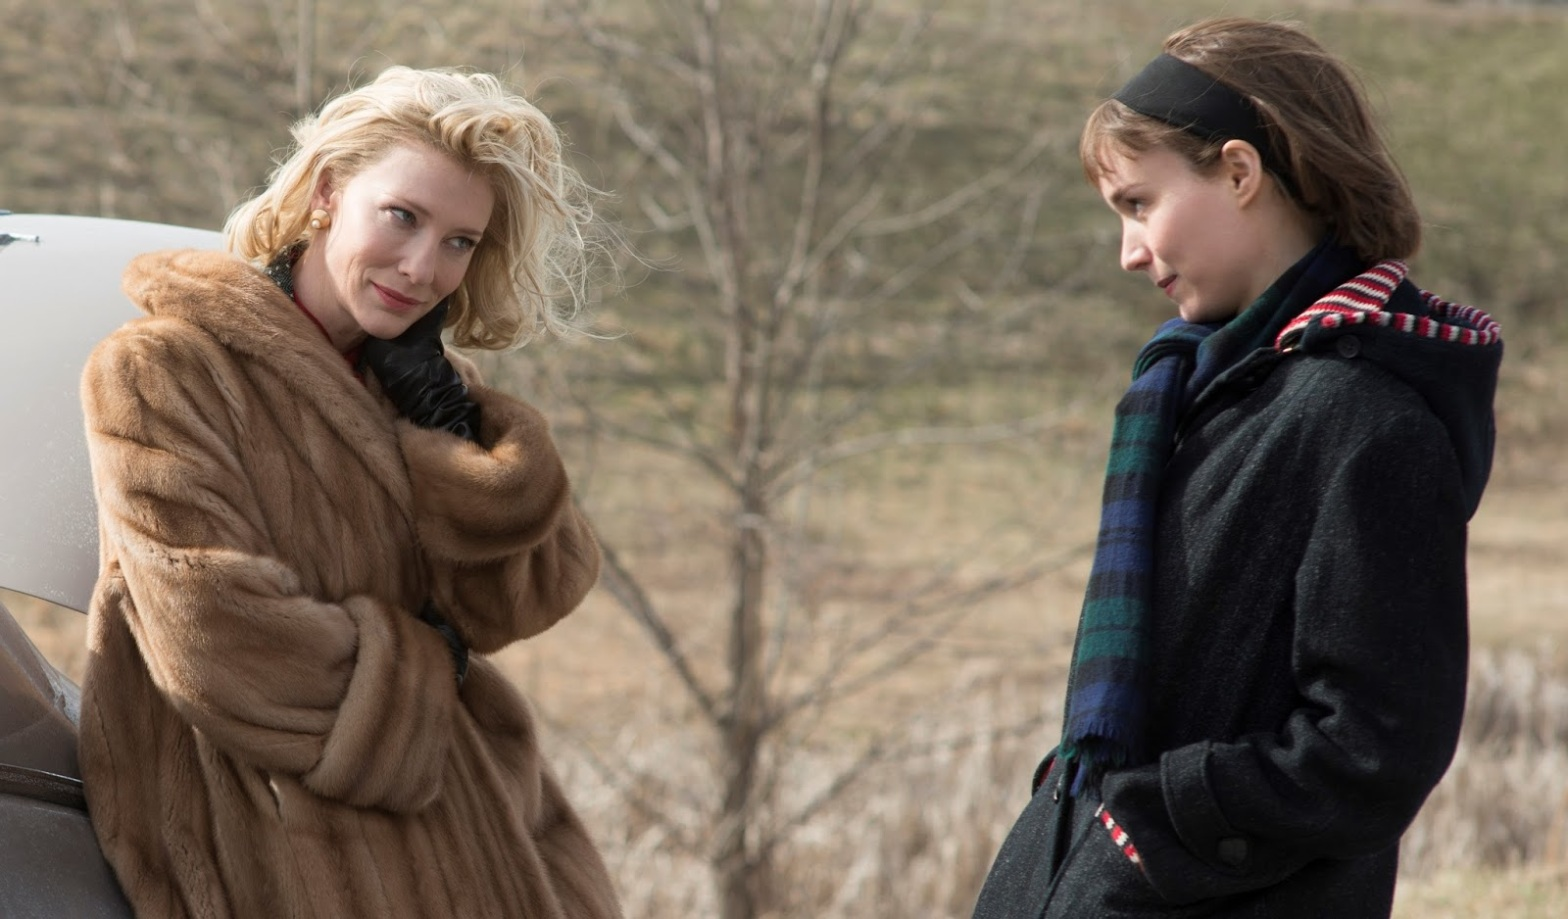 Carol Cate Blanchett and Rooney Mara